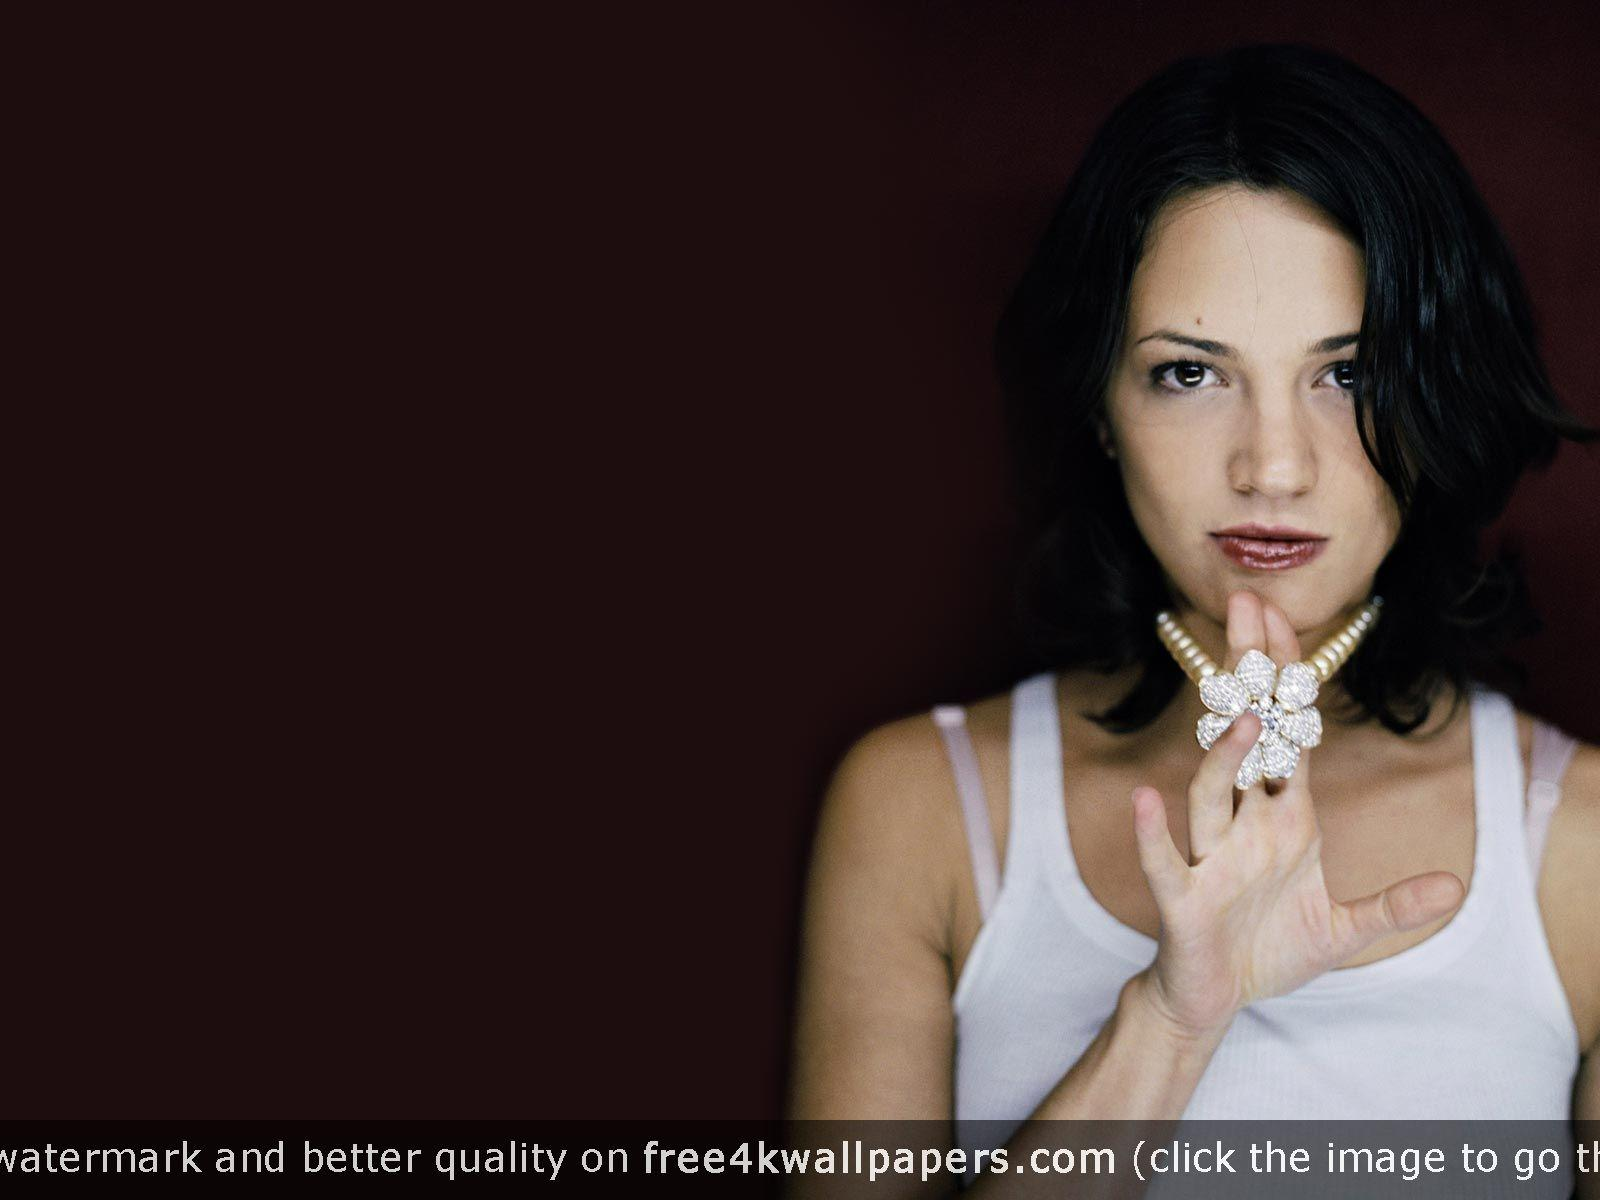 1600x1200 - Asia Argento Wallpapers 27